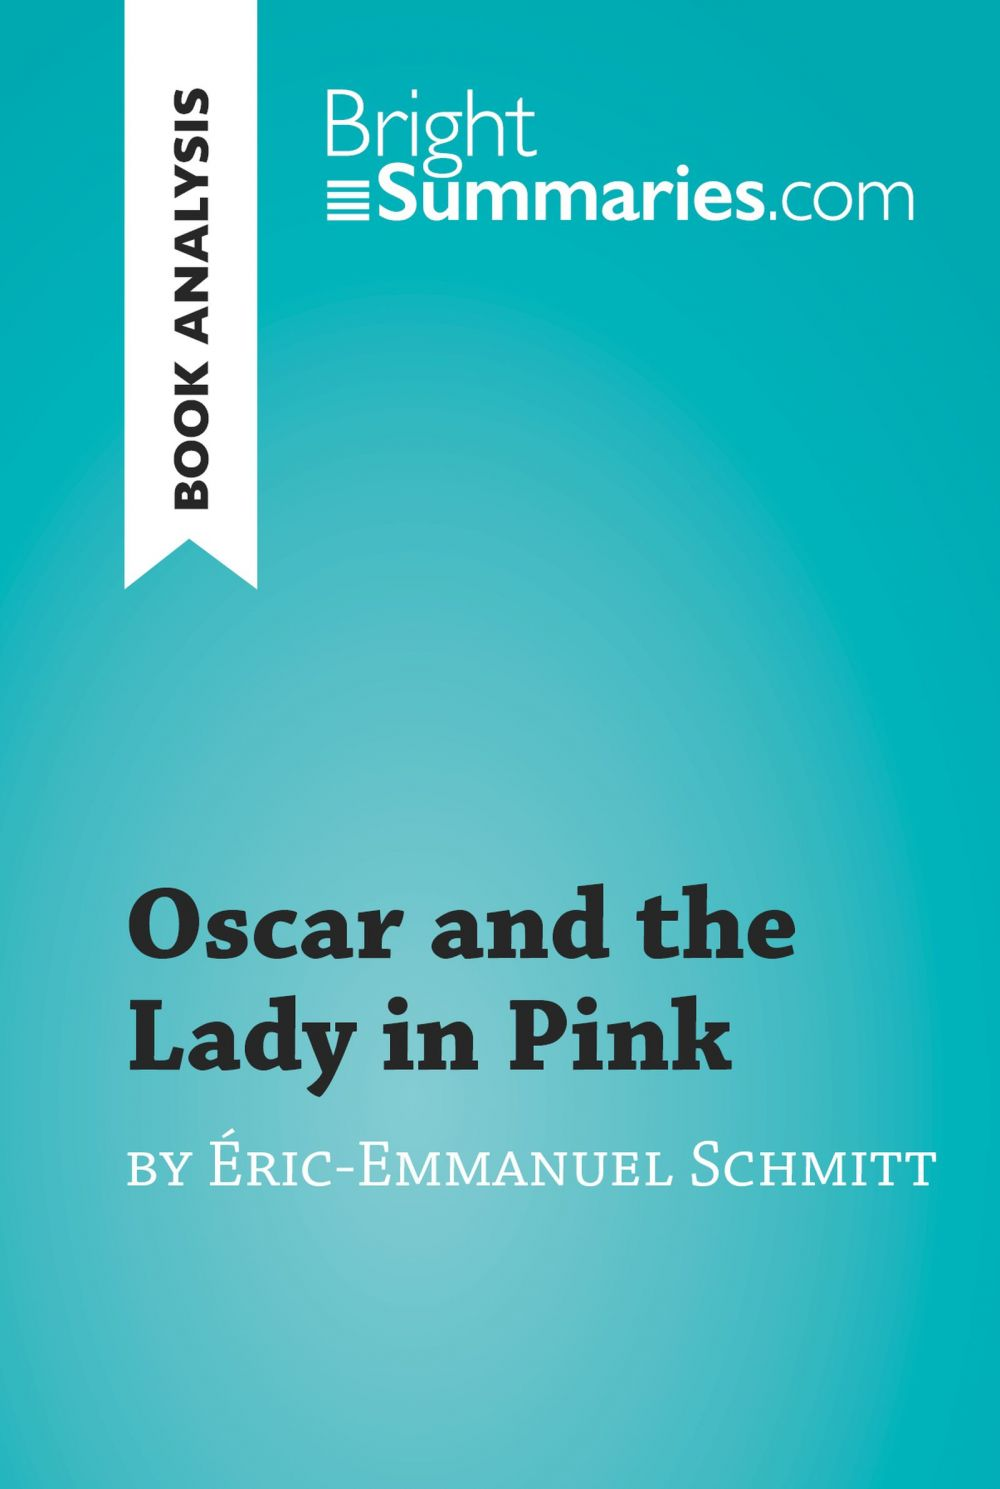 Oscar and the Lady in Pink by Éric-Emmanuel Schmitt (Book Analysis)